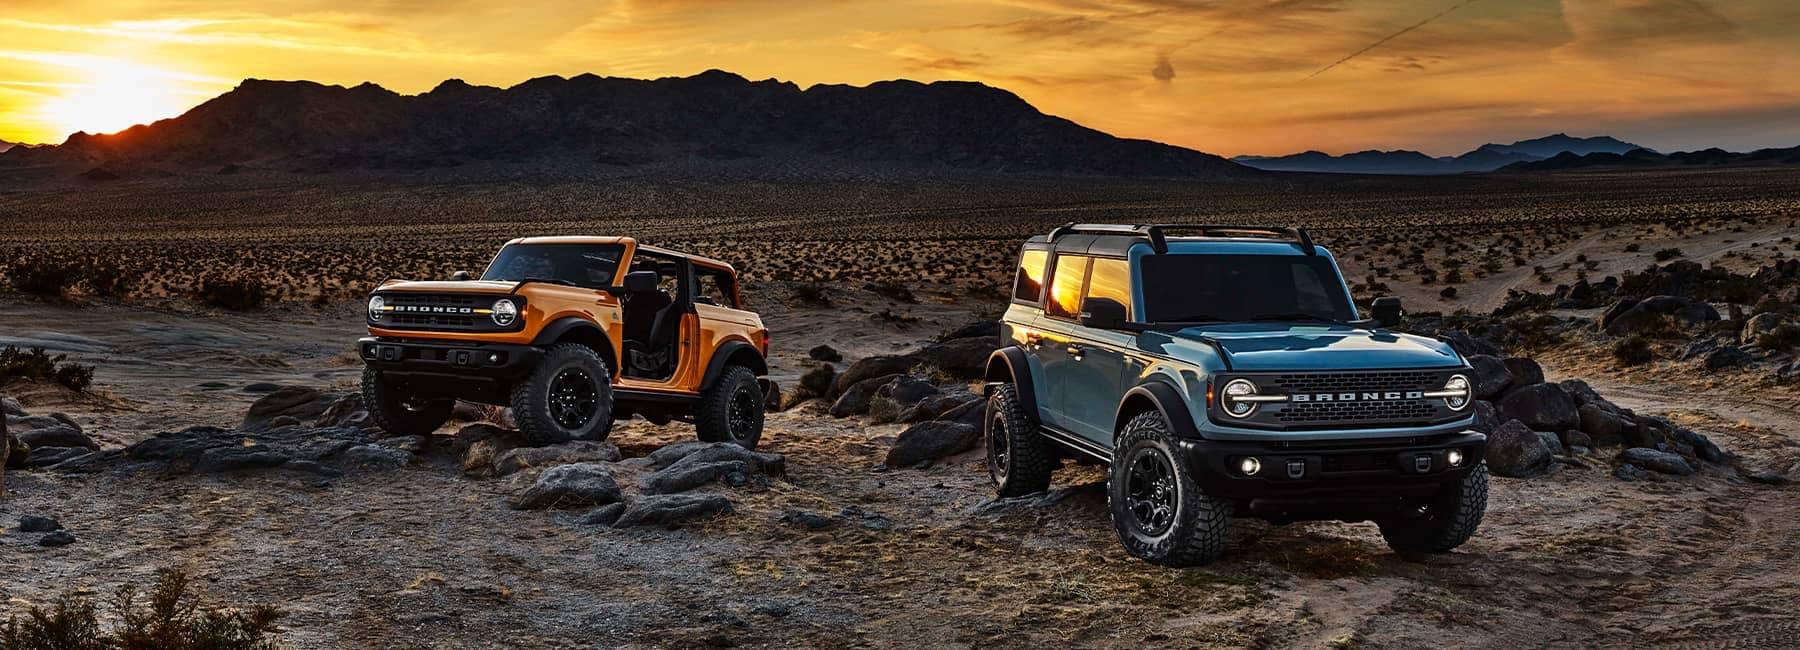 Two 2021 Ford Broncos in the desert at sunset